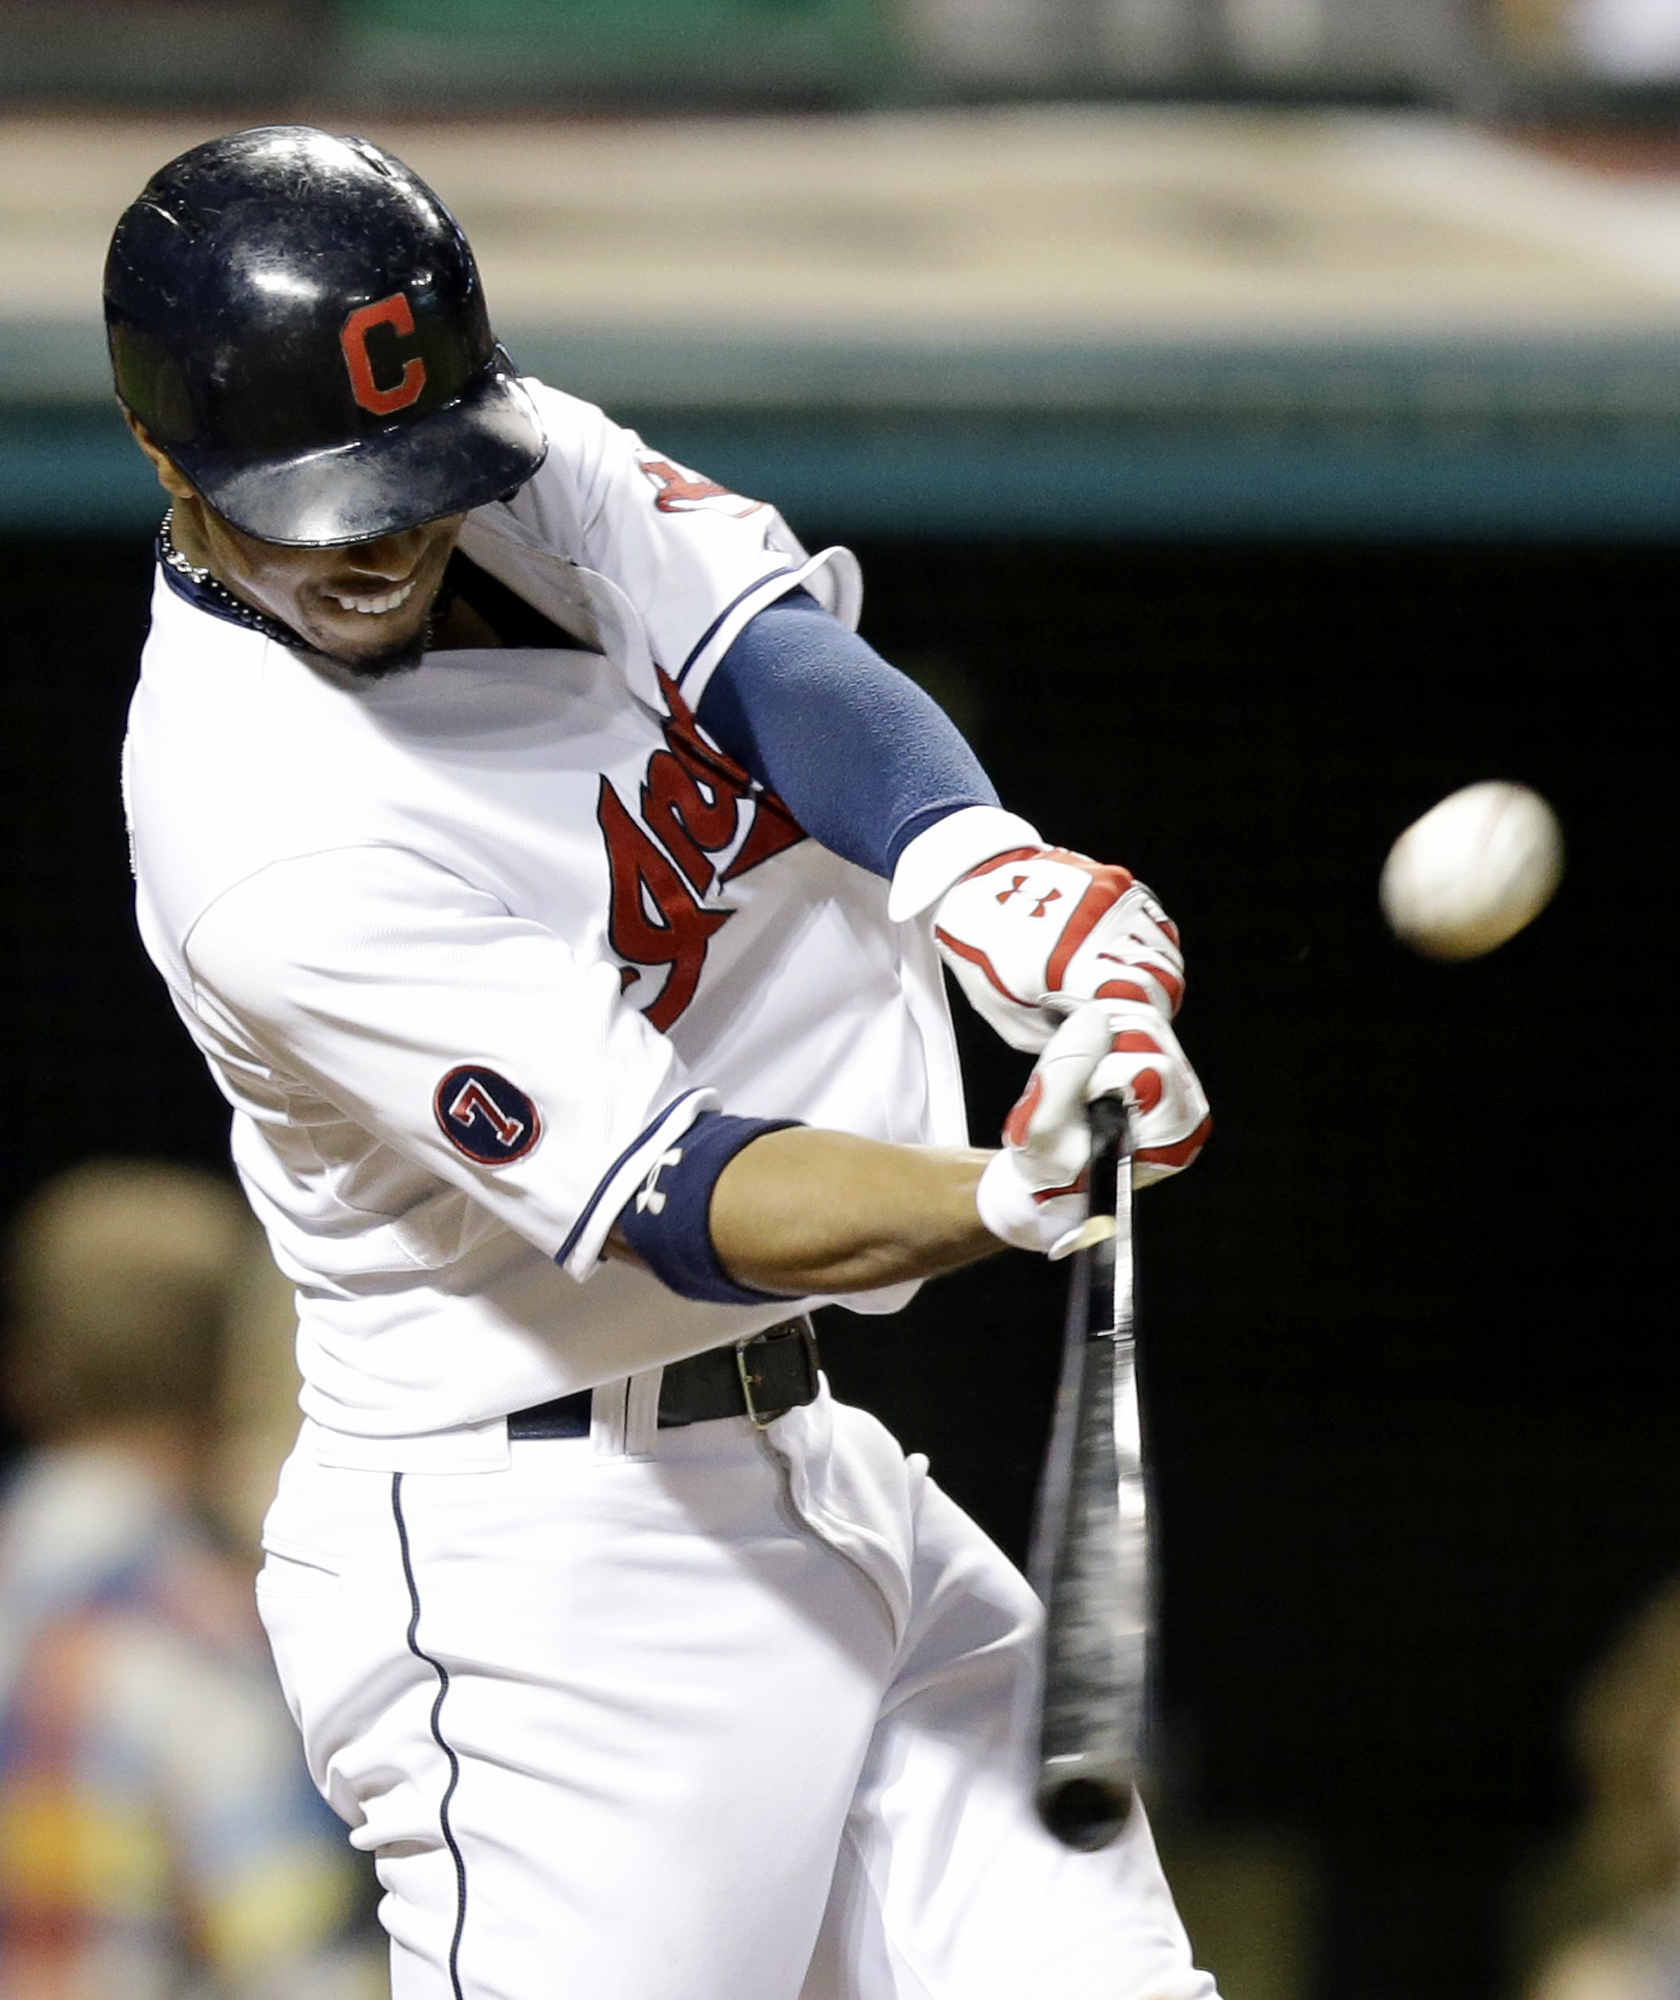 Cleveland Indians' Francisco Lindor hits an RBI-triple off Kansas City Royals relief pitcher Franklin Morales in the eighth inning of a baseball game, Monday, Sept. 14, 2015, in Cleveland. Jose Ramirez scored on the play. (AP Photo/Tony Dejak)